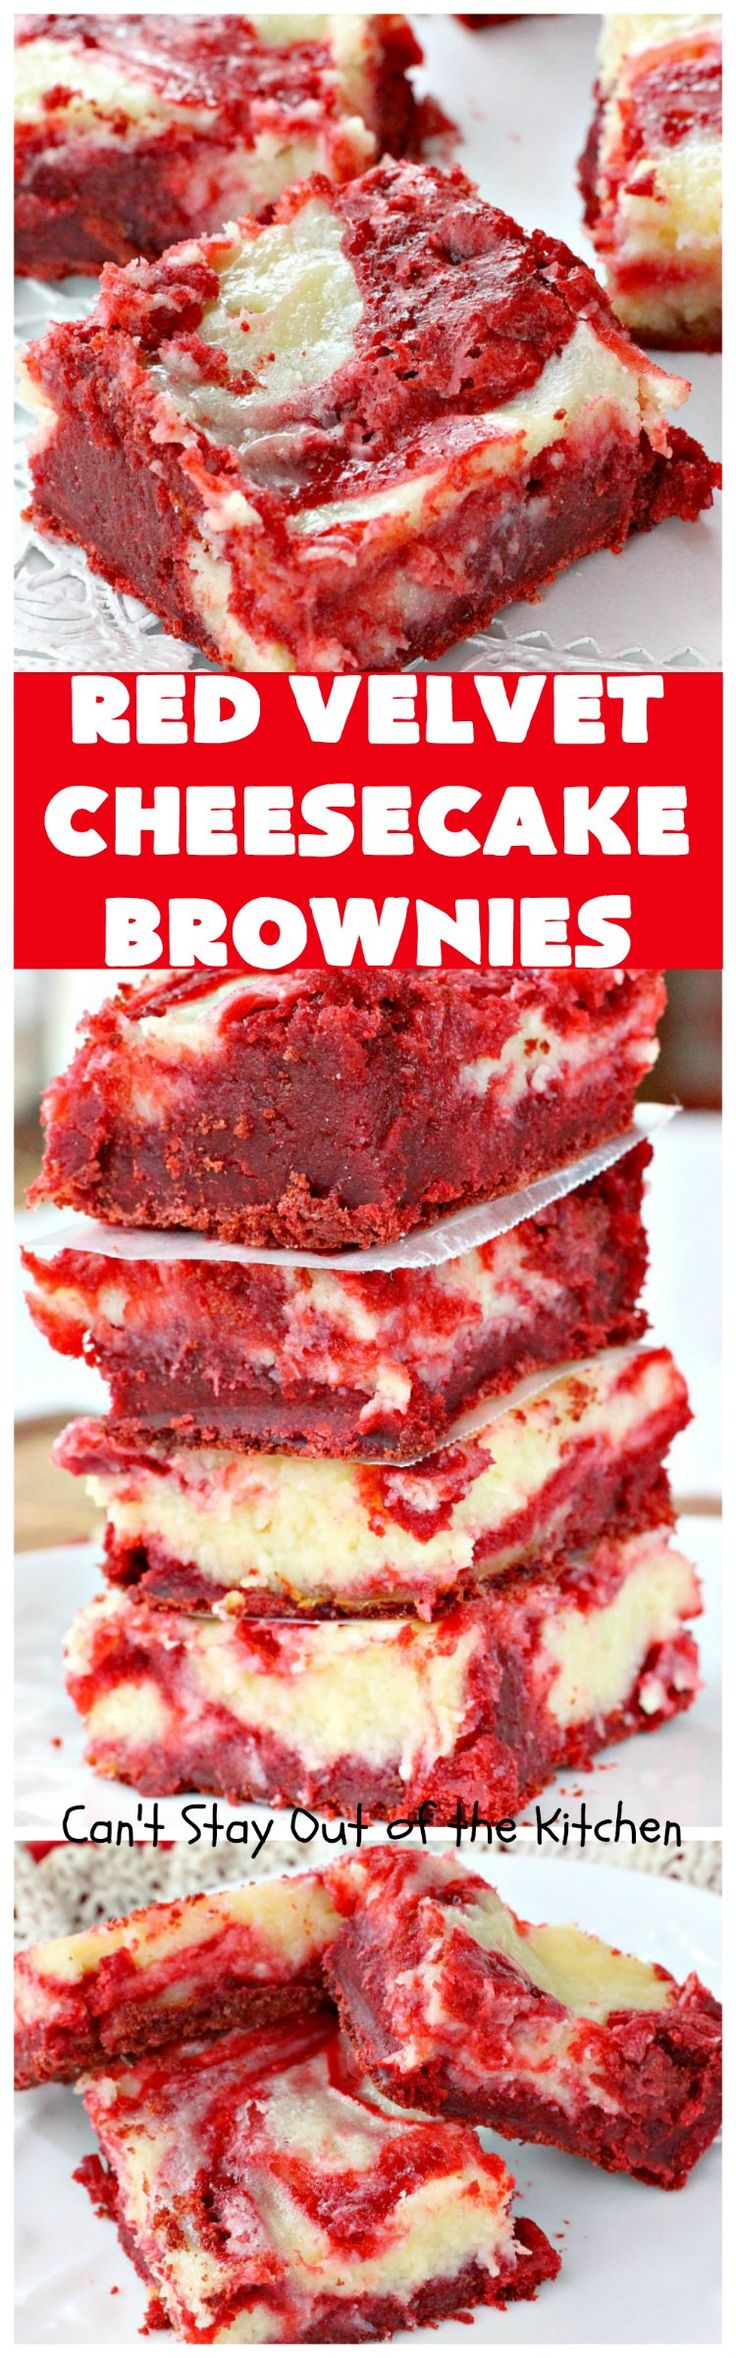 Red Velvet Cheesecake Brownies | These are the most awesome red velvet brownies ever! They have a luscious cheesecake layer swirled into the batter. Perfect dessert for holidays like Christmas or Valentine's Day.